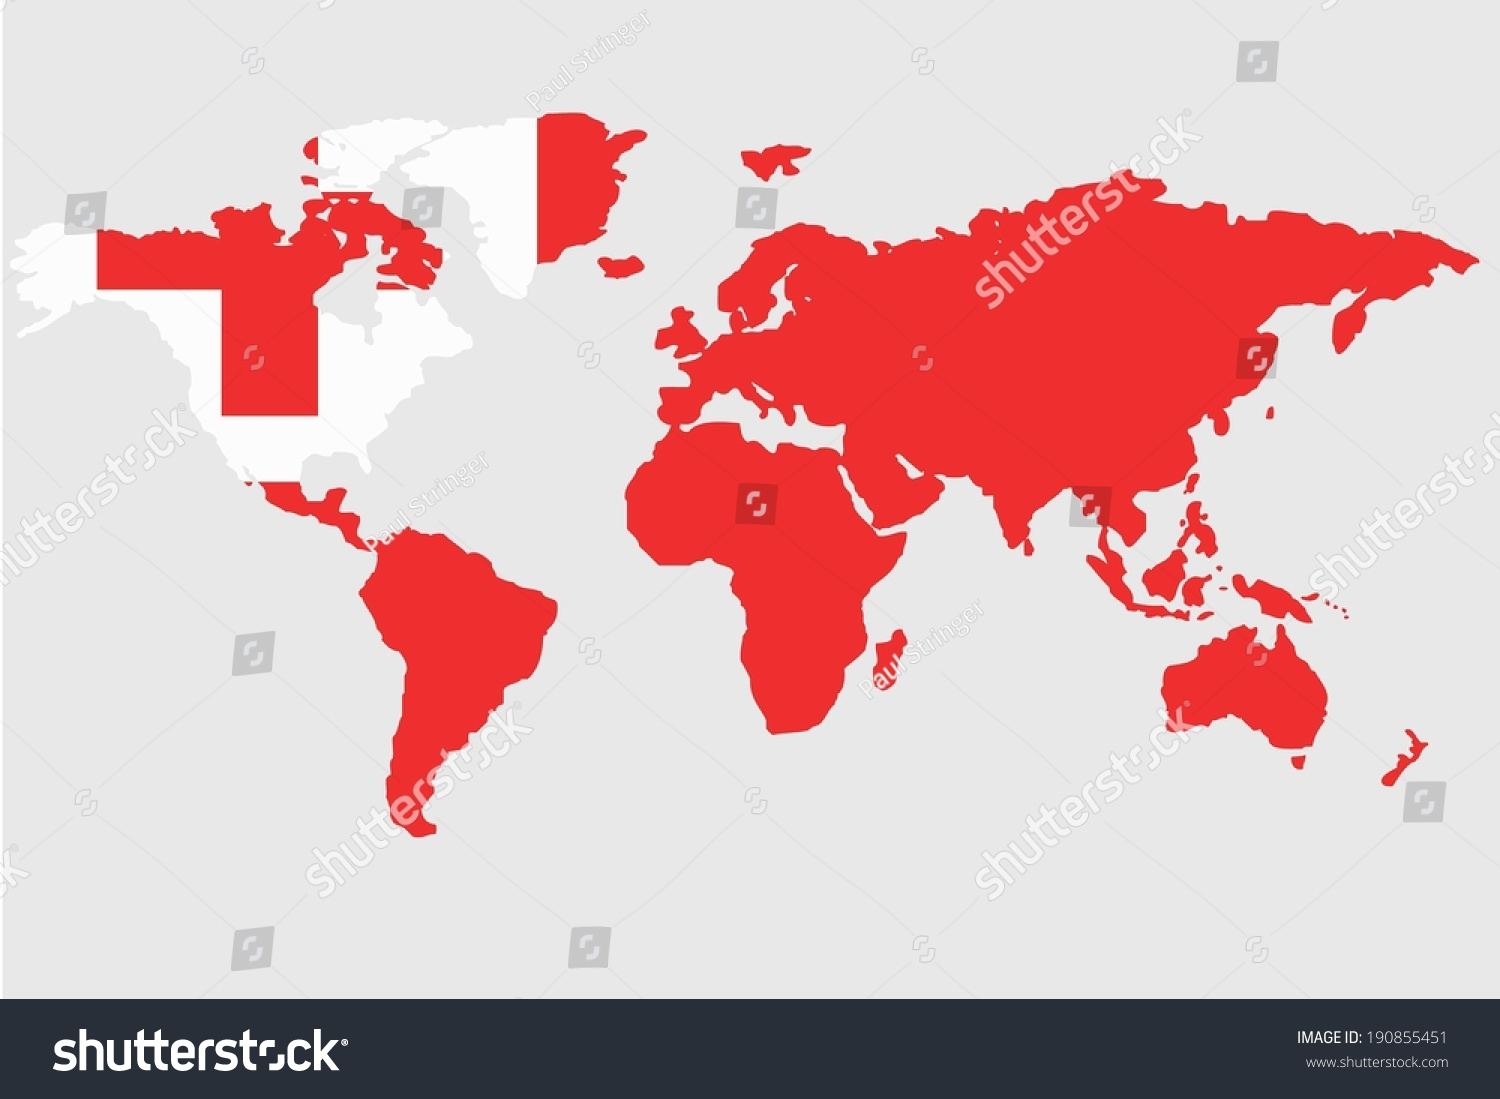 Tonga World Map.An Illustrated Map Of The World With The Flag Of Tonga Ez Canvas